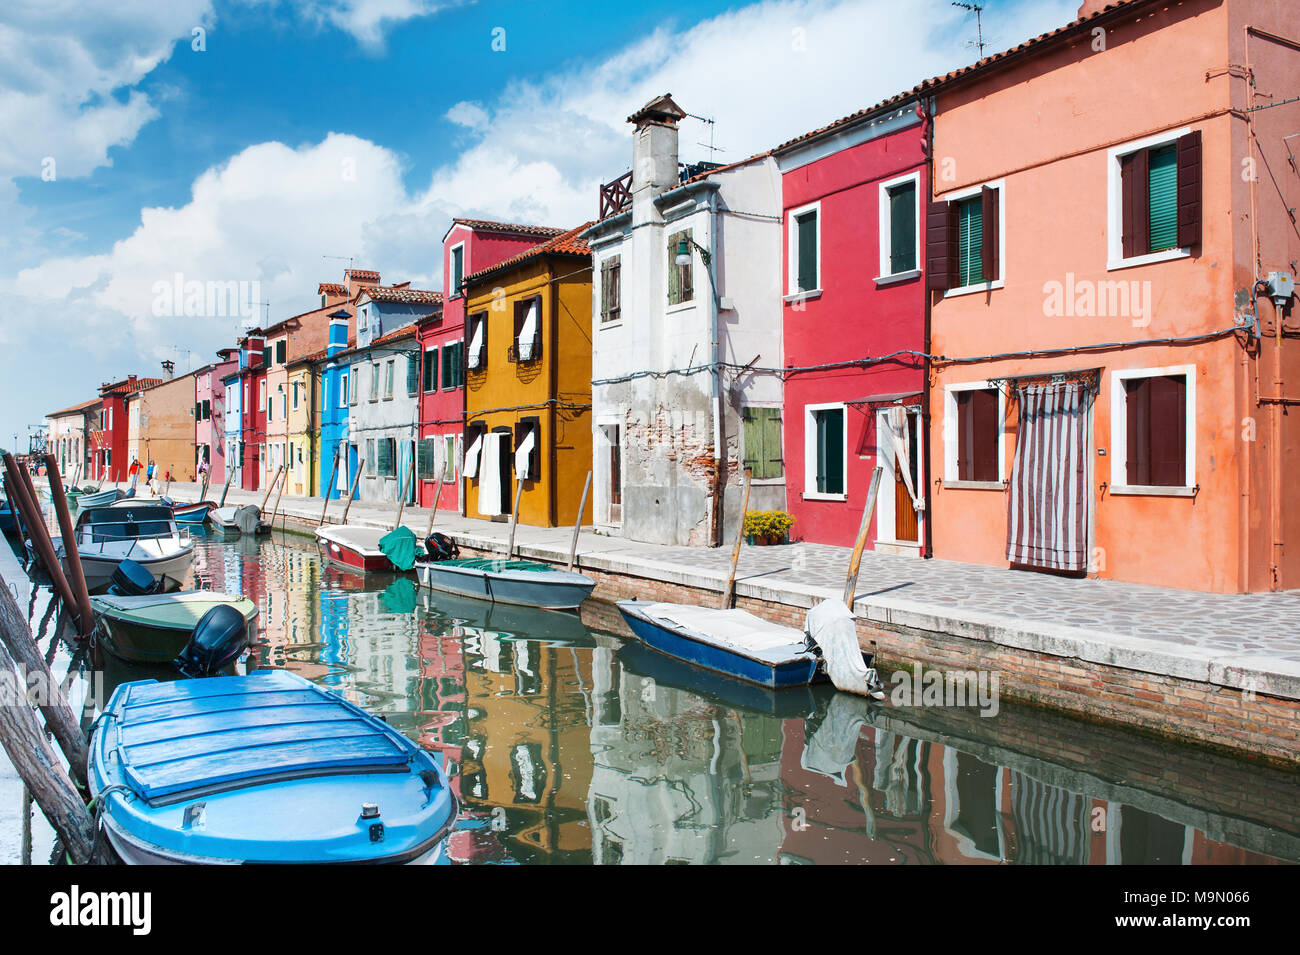 Burano island, Venice, Italy, Europe - canal and colorful houses beautiful day view Stock Photo